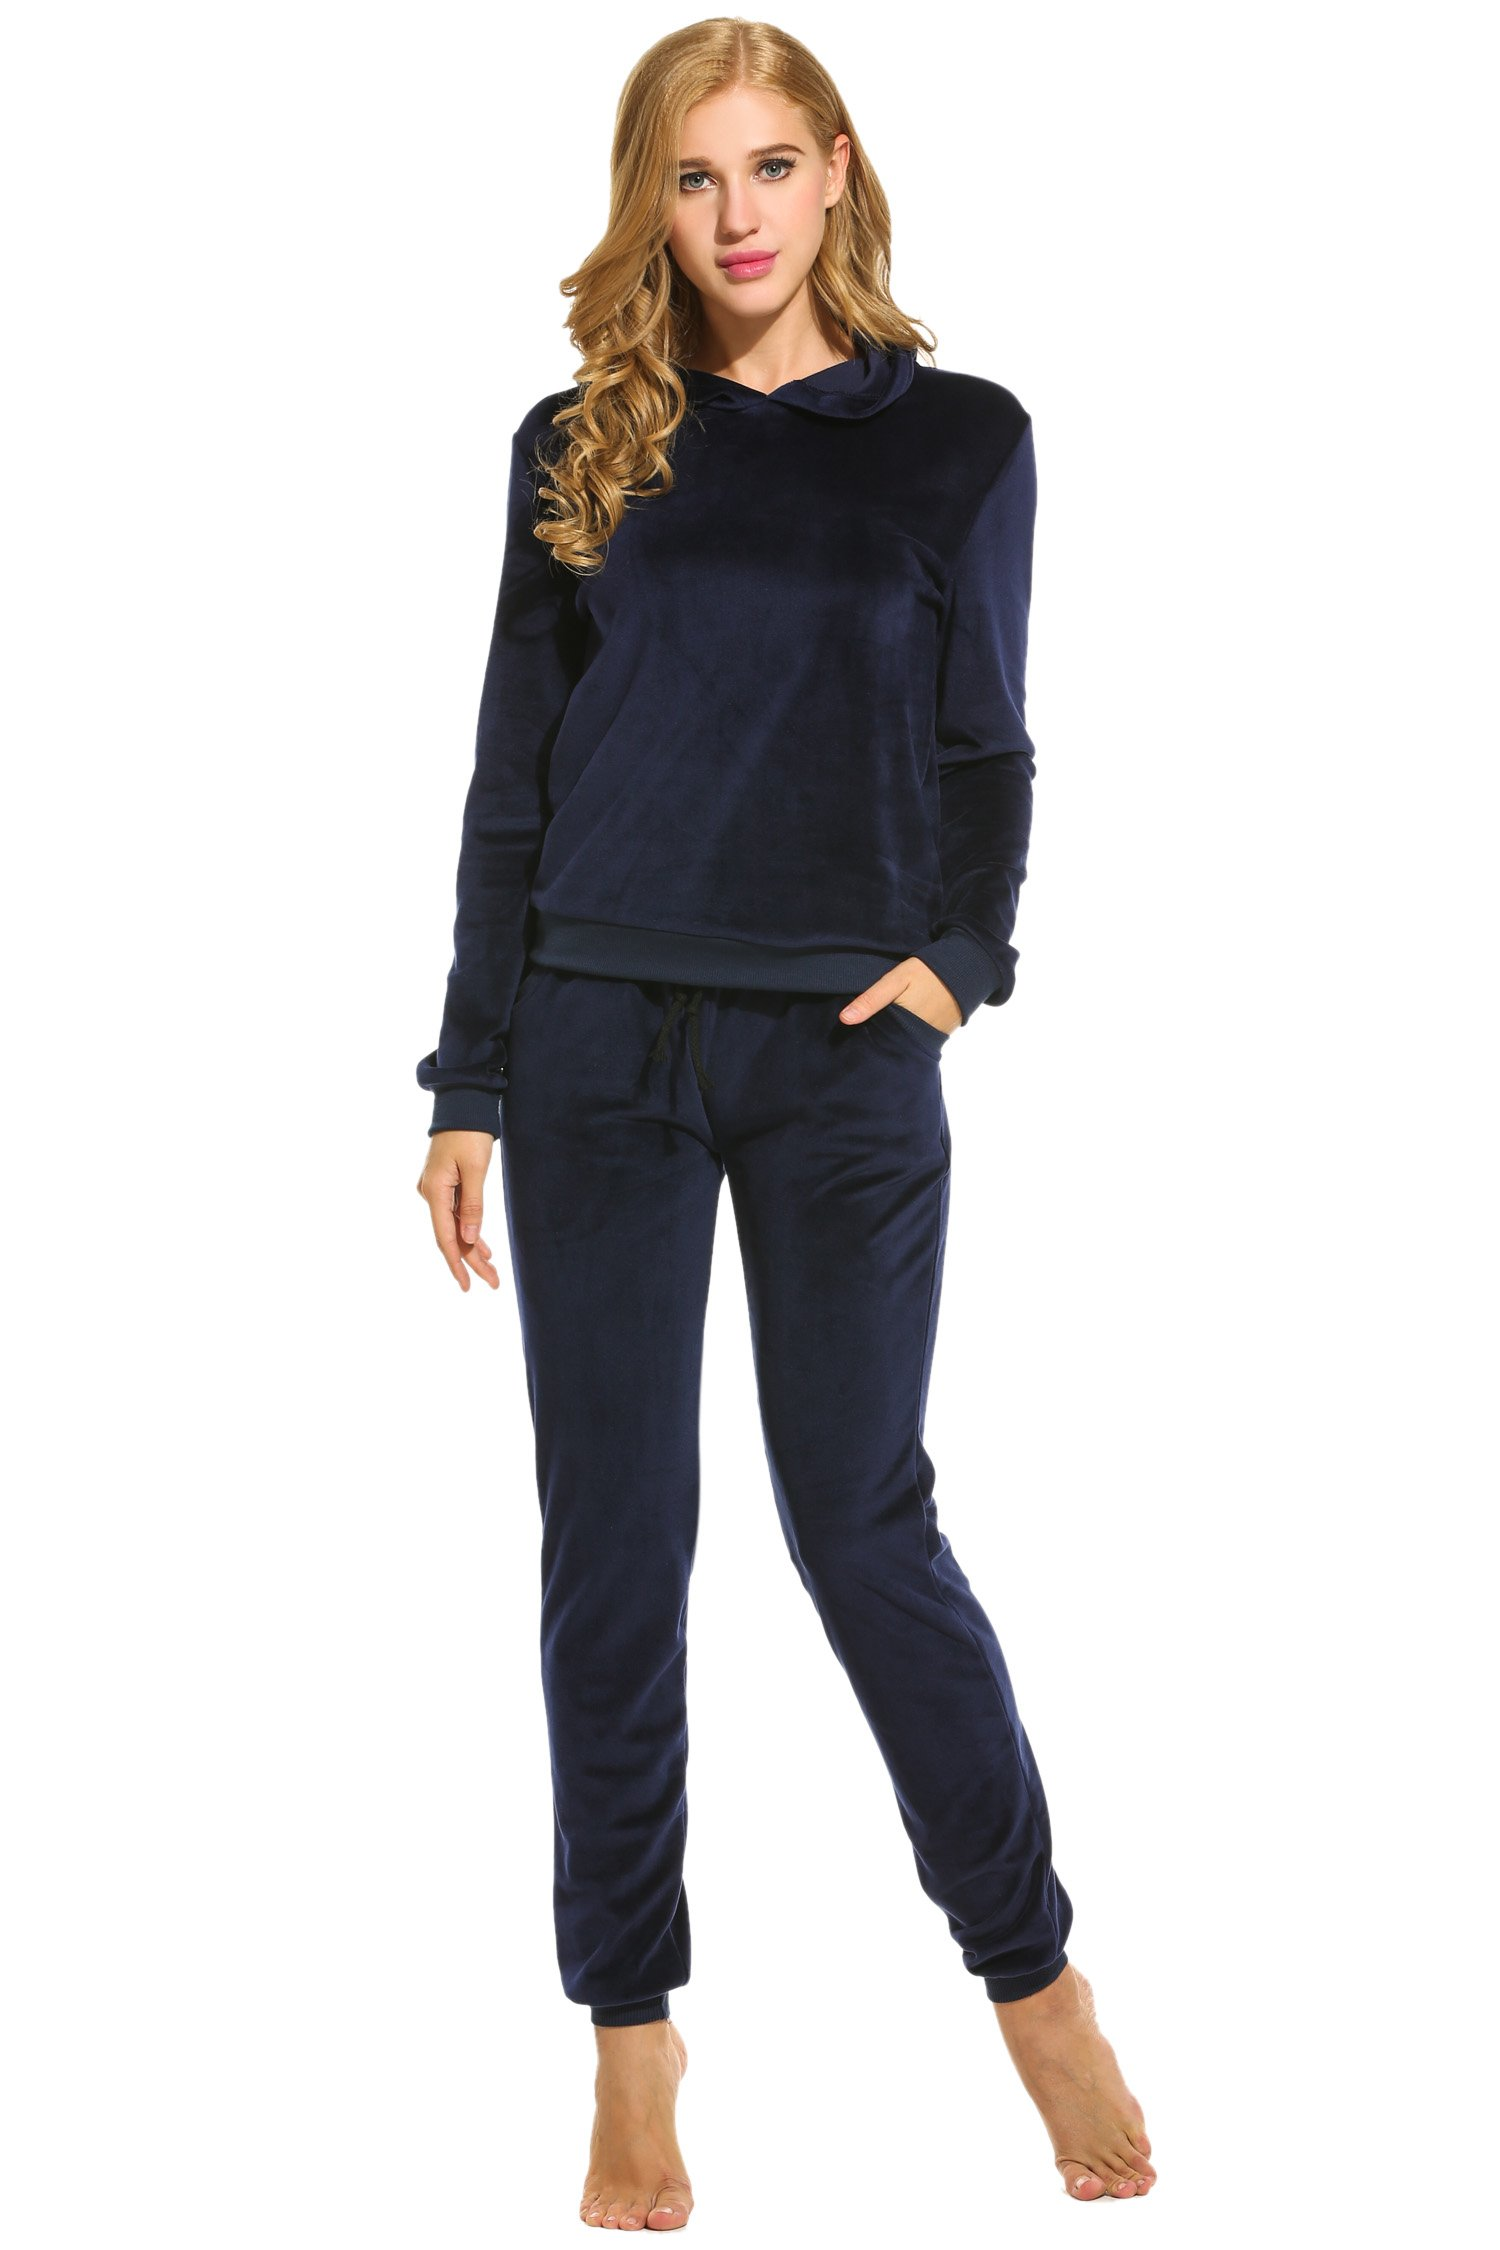 Hotouch Womens 2 Piece Set Basic & Hooded Velour Sweat Track Suit Navy Blue M